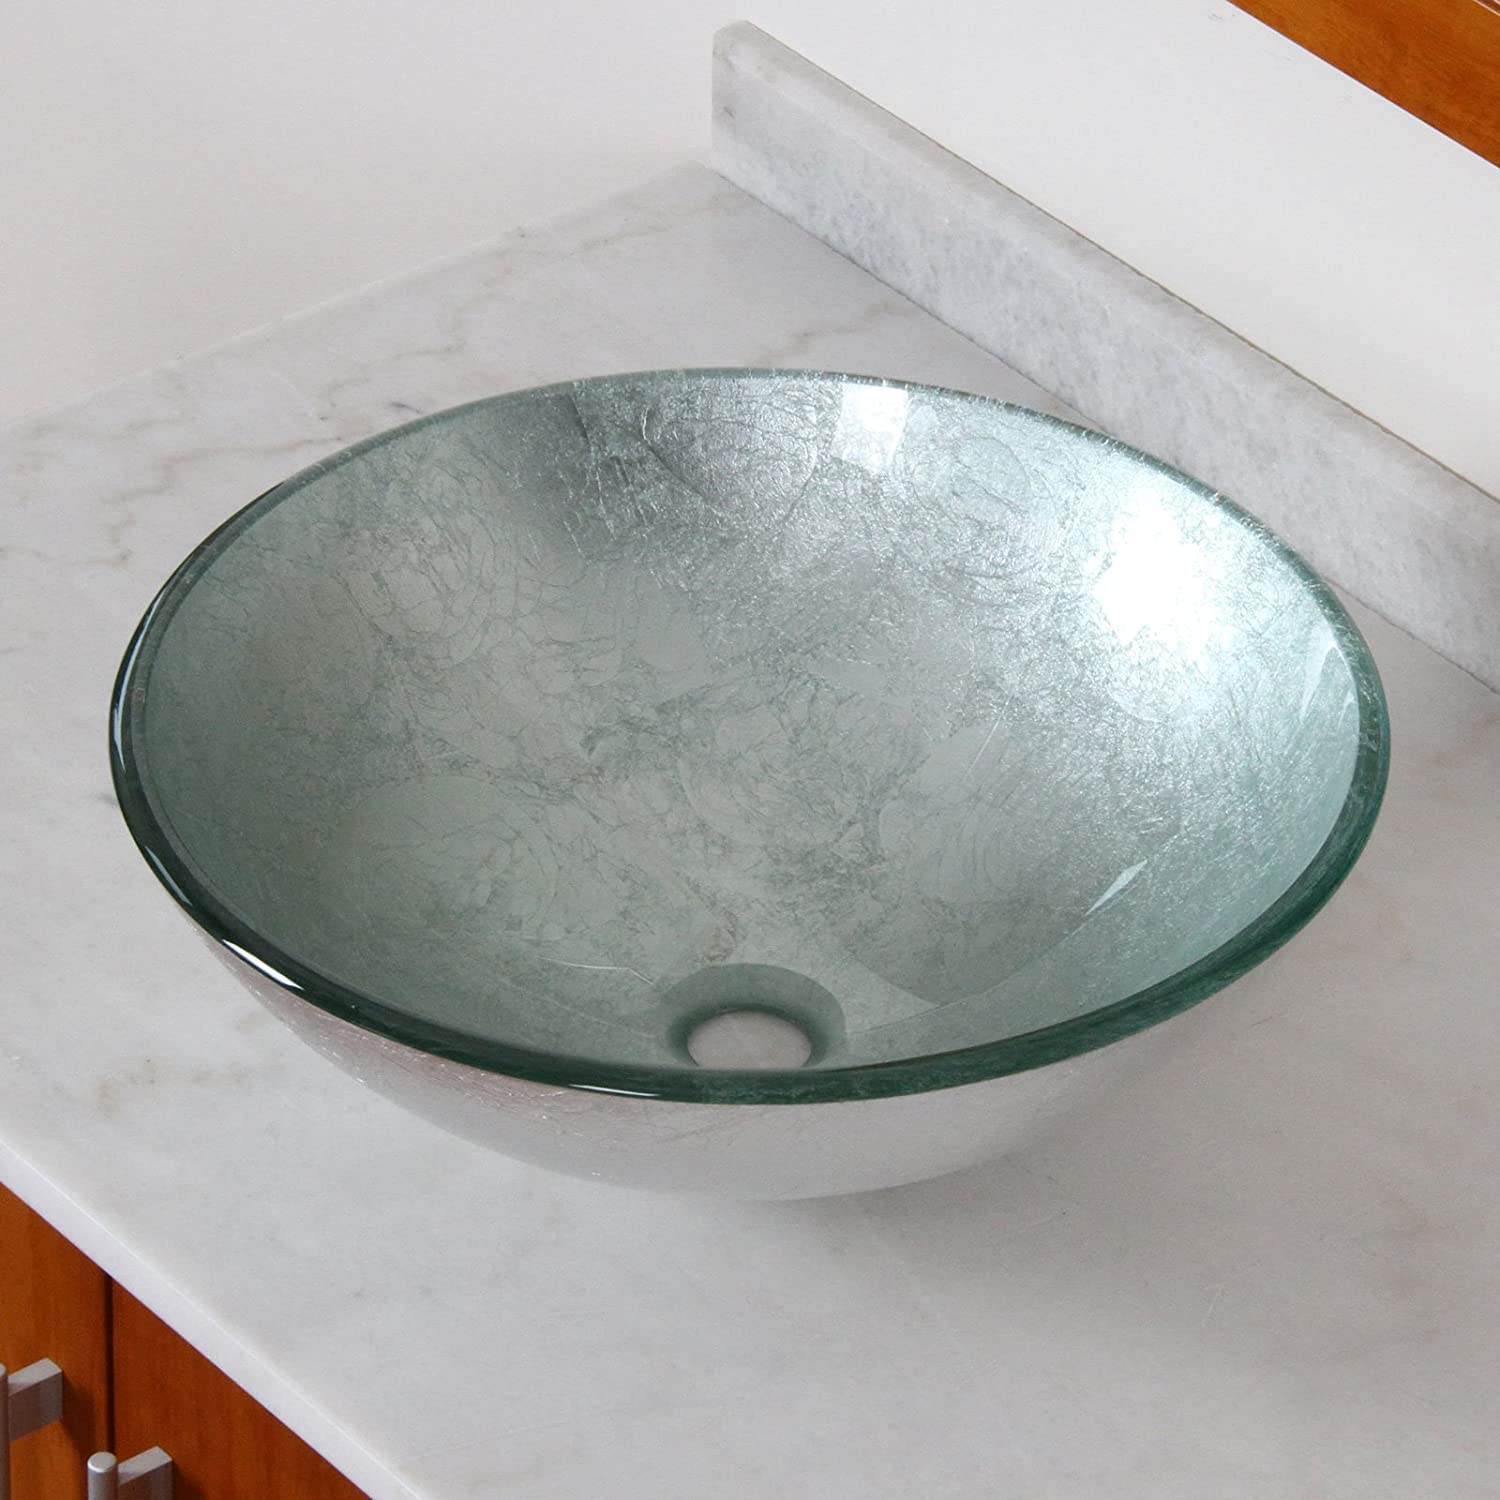 ELITE Modern Tempered Bathroom Glass Vessel Sink With Silver Wrinkles  Pattern U0026 Chrome Waterfall Faucet Combo     Amazon.com